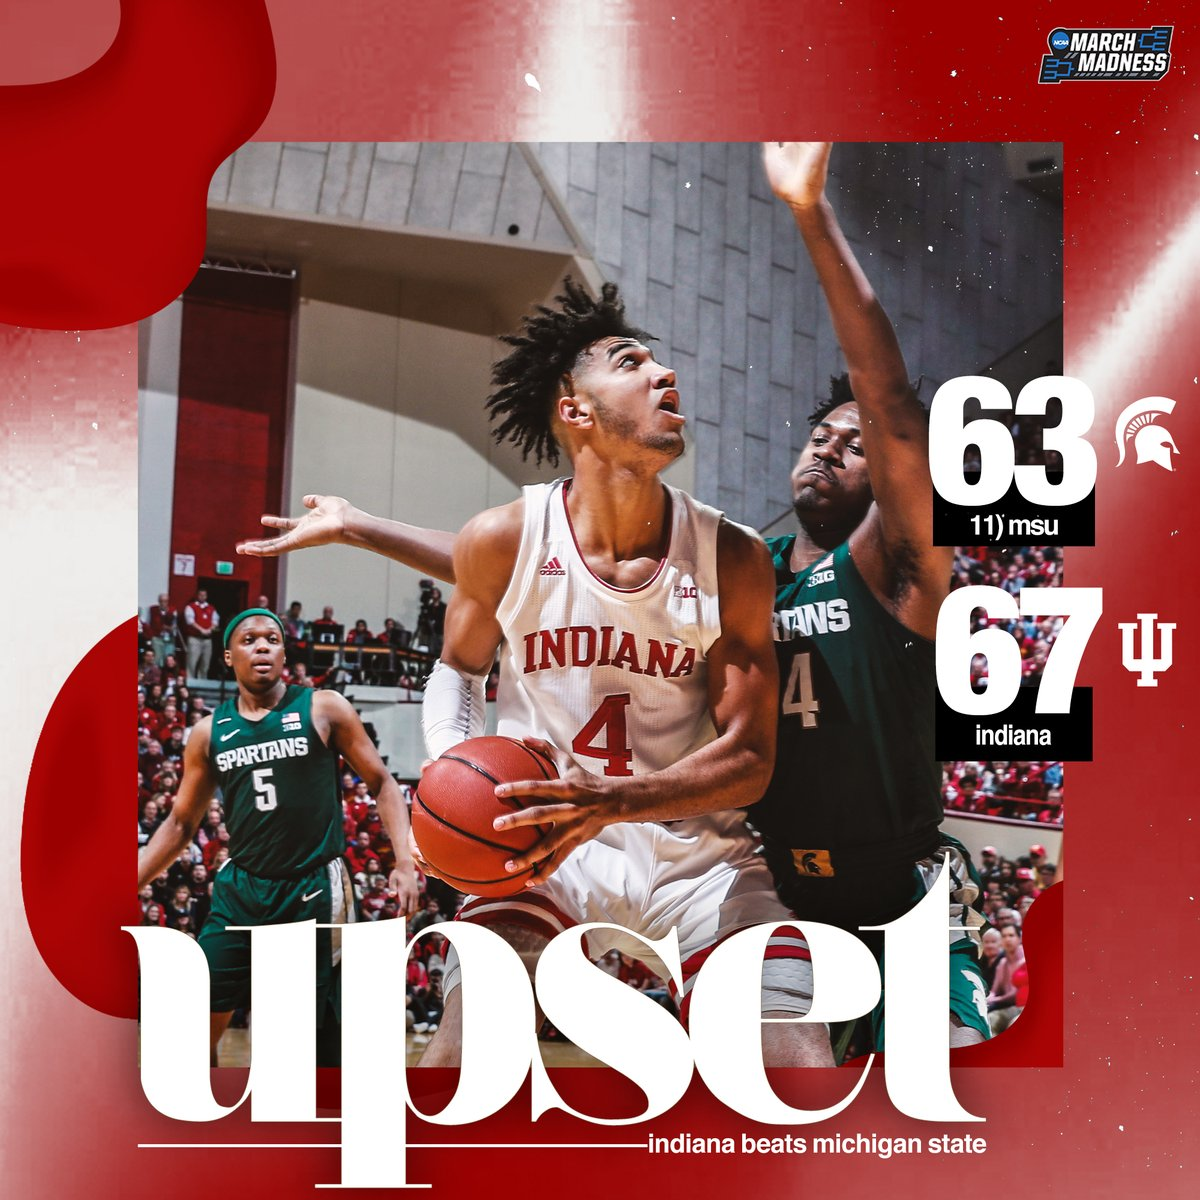 HOOSIERS DOWN SPARTY!  Indiana UPSETS No. 11 Michigan State in a thriller at Assembly Hall! #IUBB ⚪️🔴